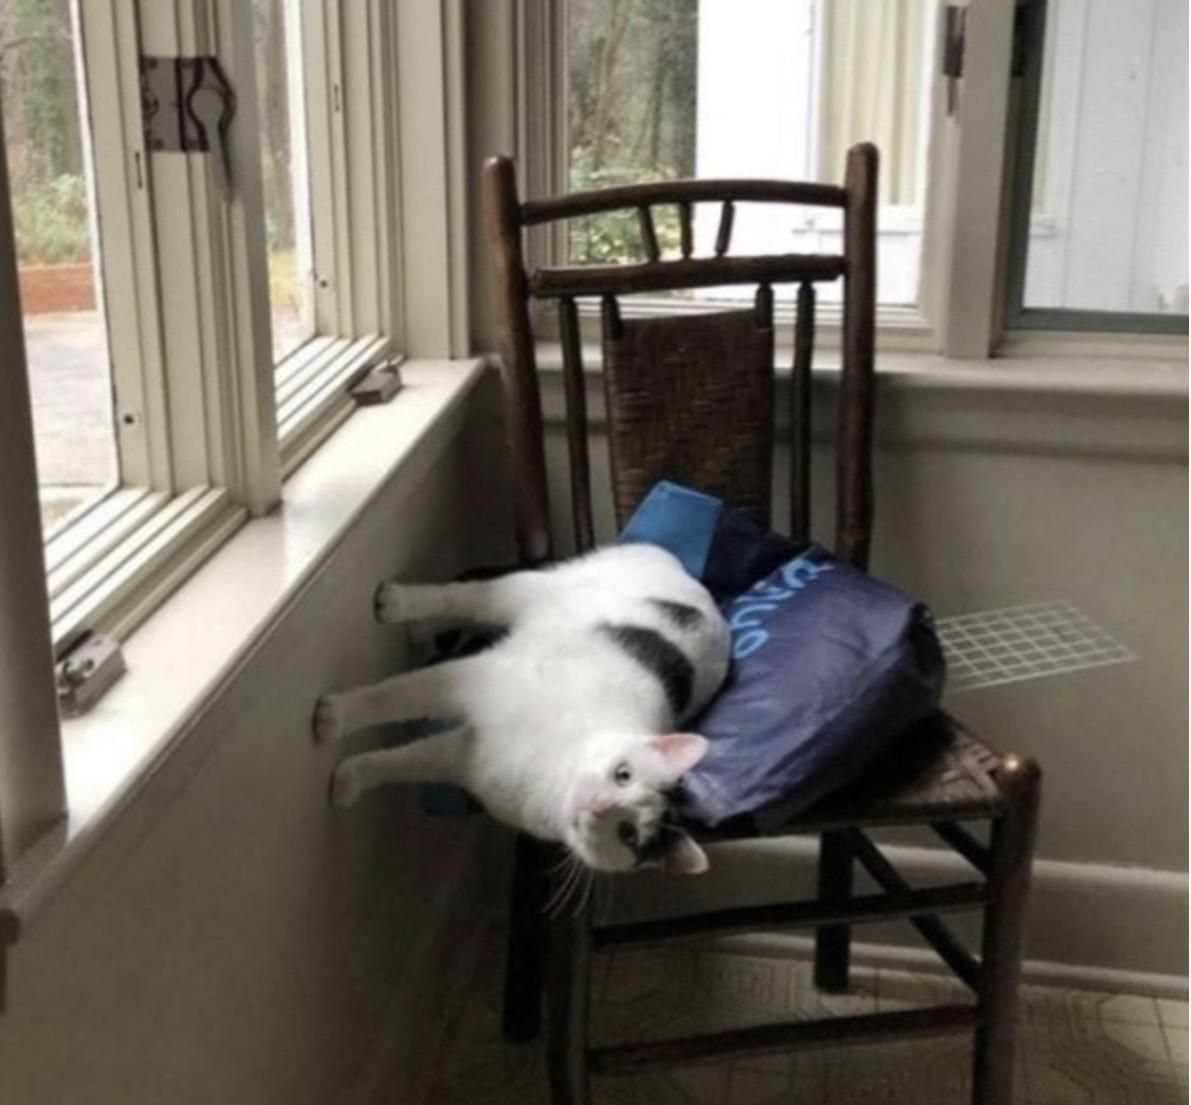 Cats do not observe the laws of physics—-or any laws for that matter